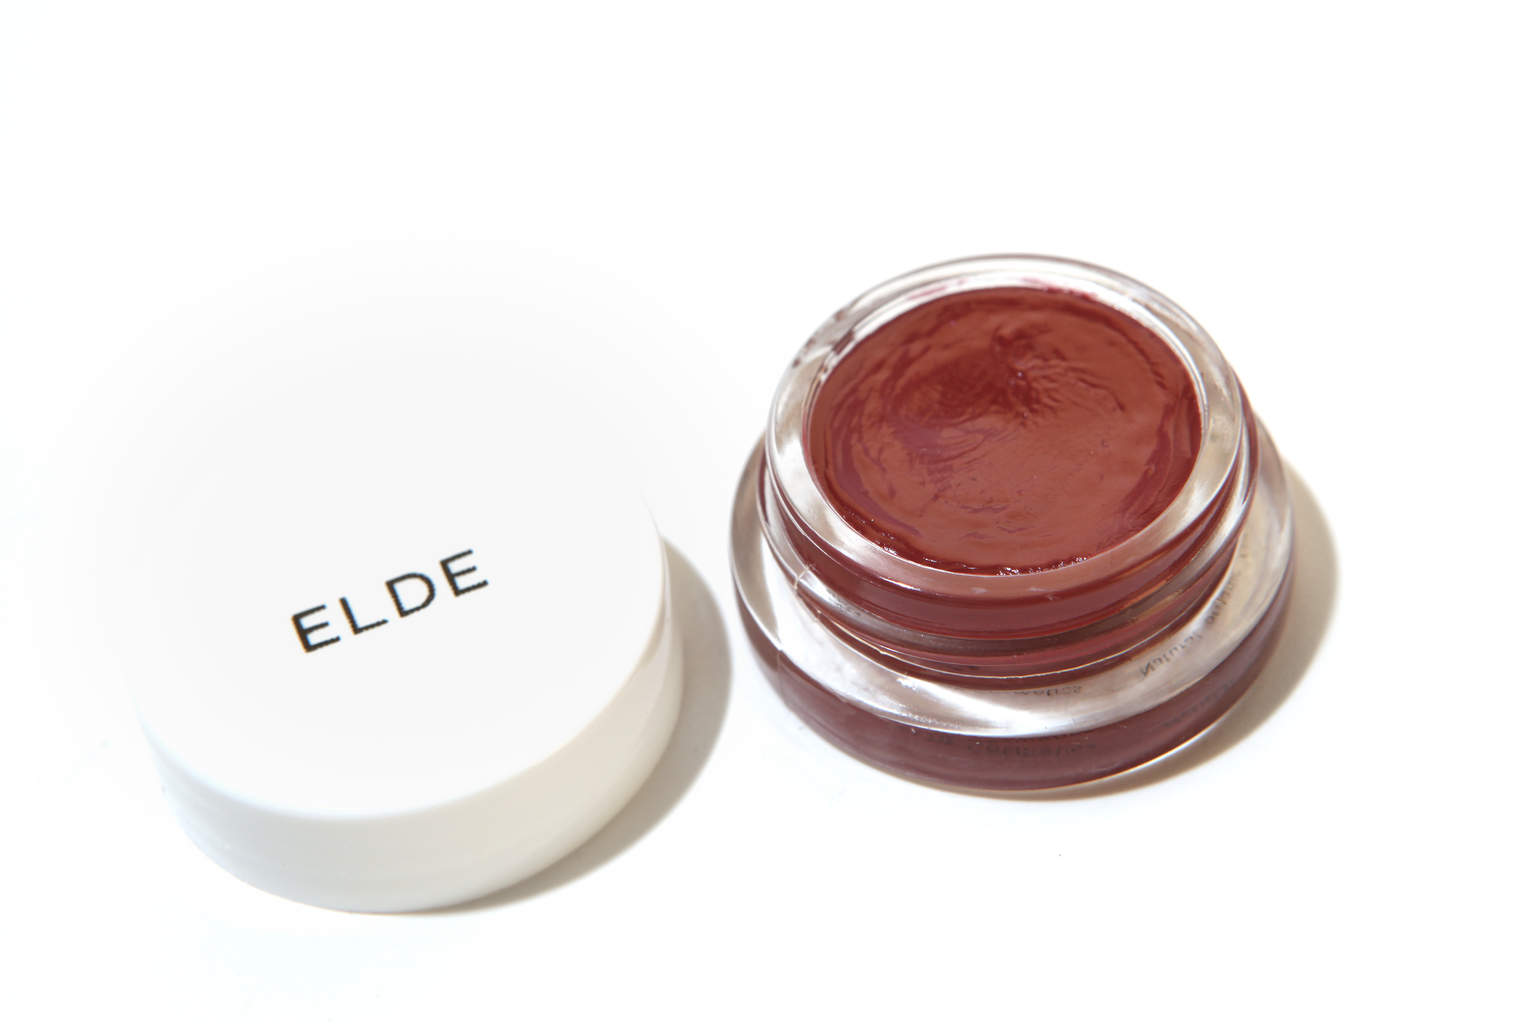 Elde Cosmetics Lip and Cheek Rush Impulse